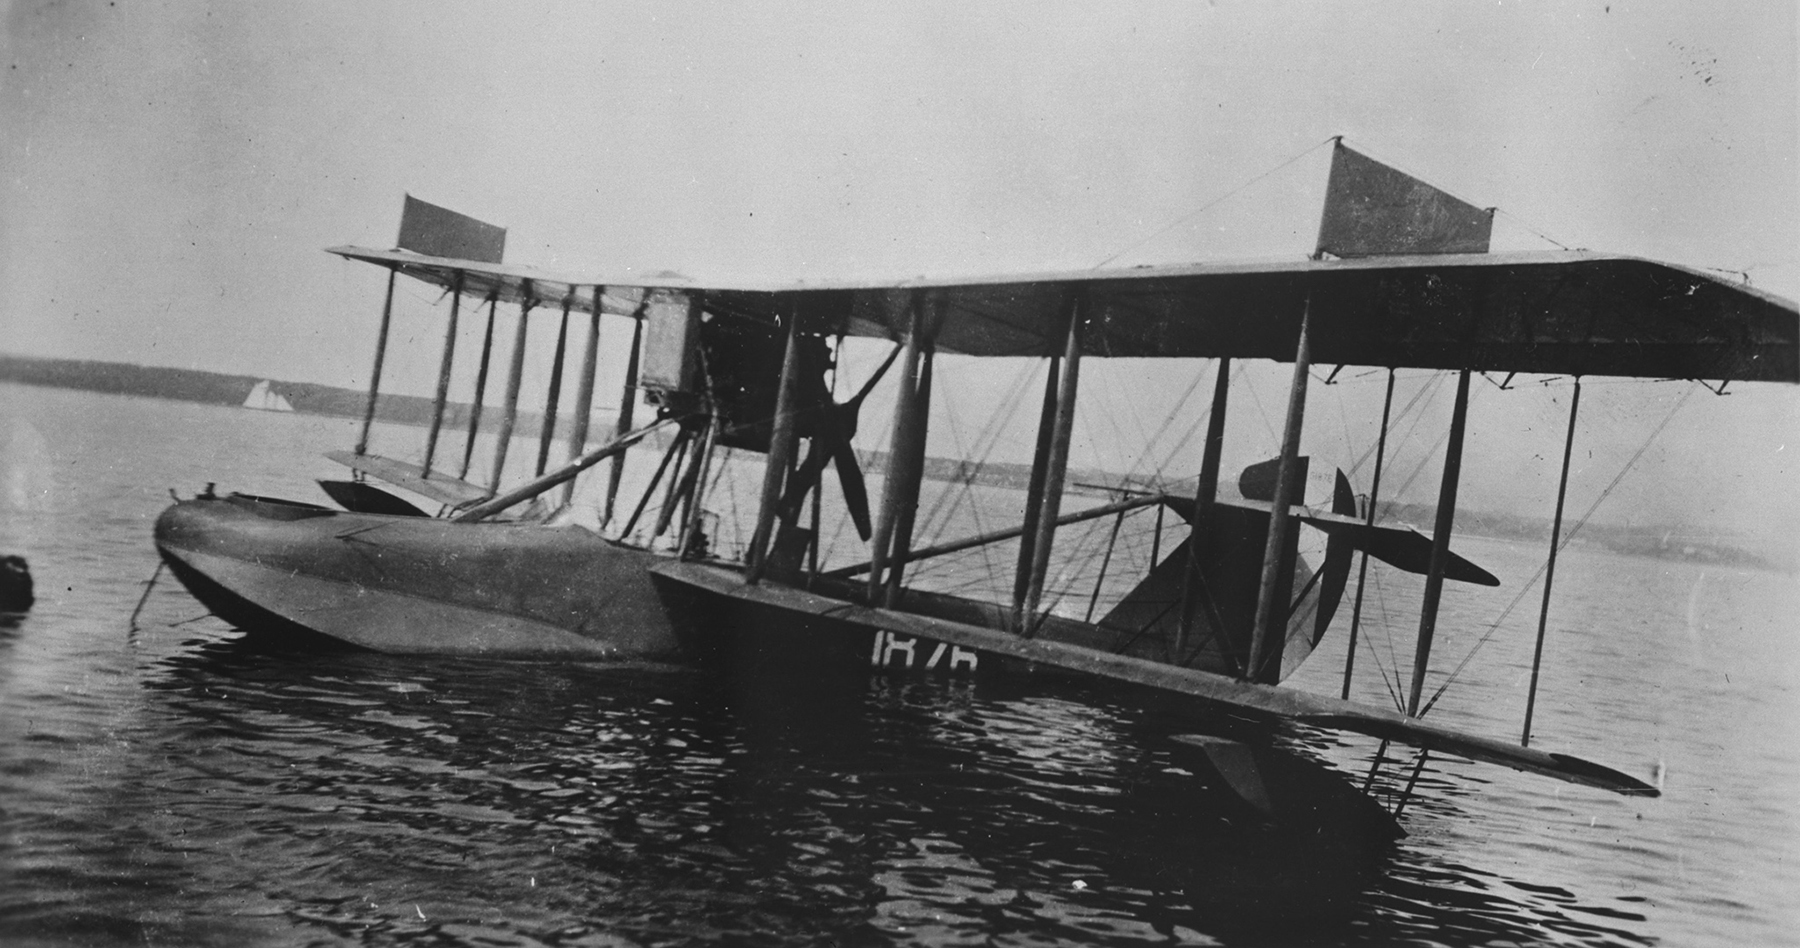 HS-2L flying noat No. 1876 moored off the Naval Air Station, Eastern Passage, Dartmouth, Nova Scotia, in spring 1919. This is one of 12 HS-2L flying noats operated by the United States Navy from bases at Halifax and Sydney, Nova Scotia, during 1918. PHOTO: DND Archives, CN-6507